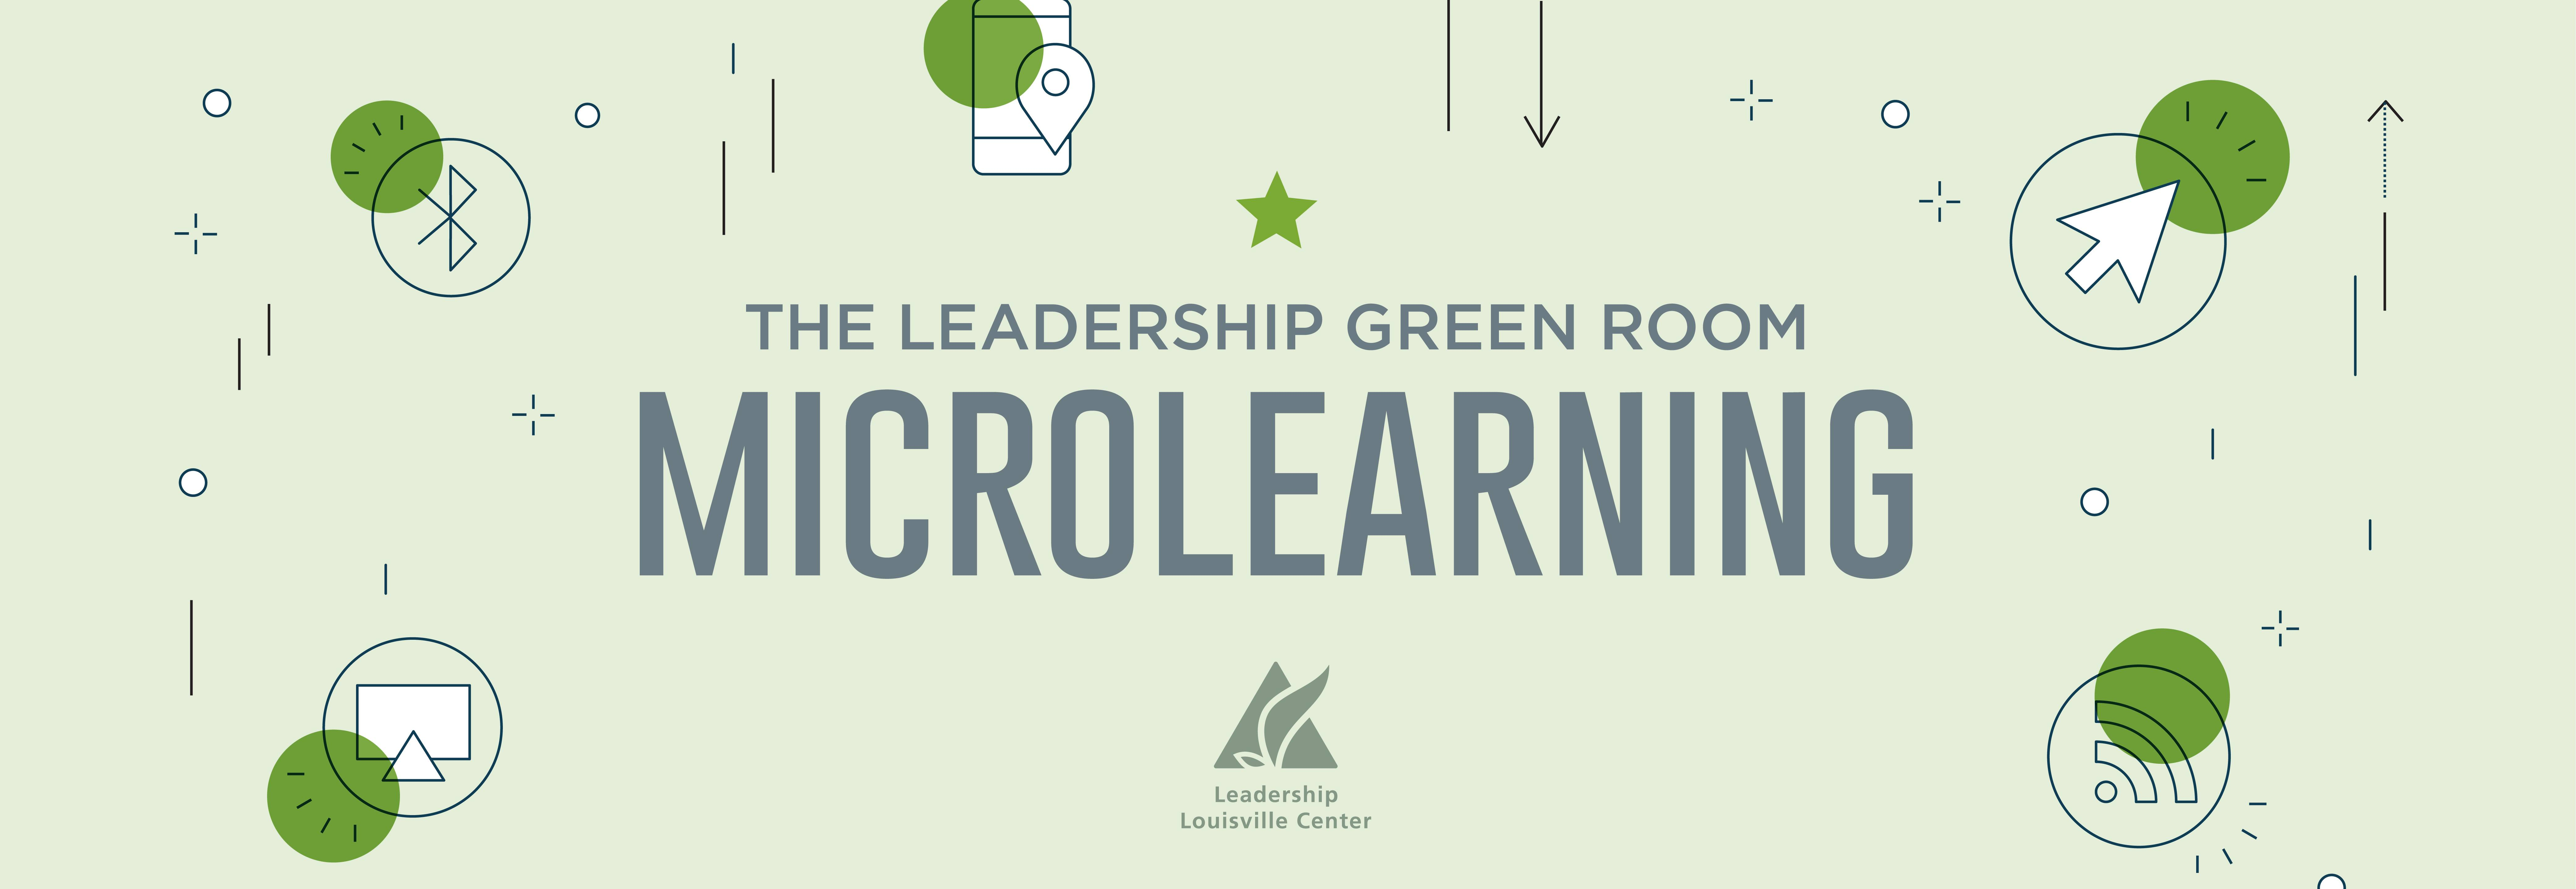 Leadership Green Room Microlearning